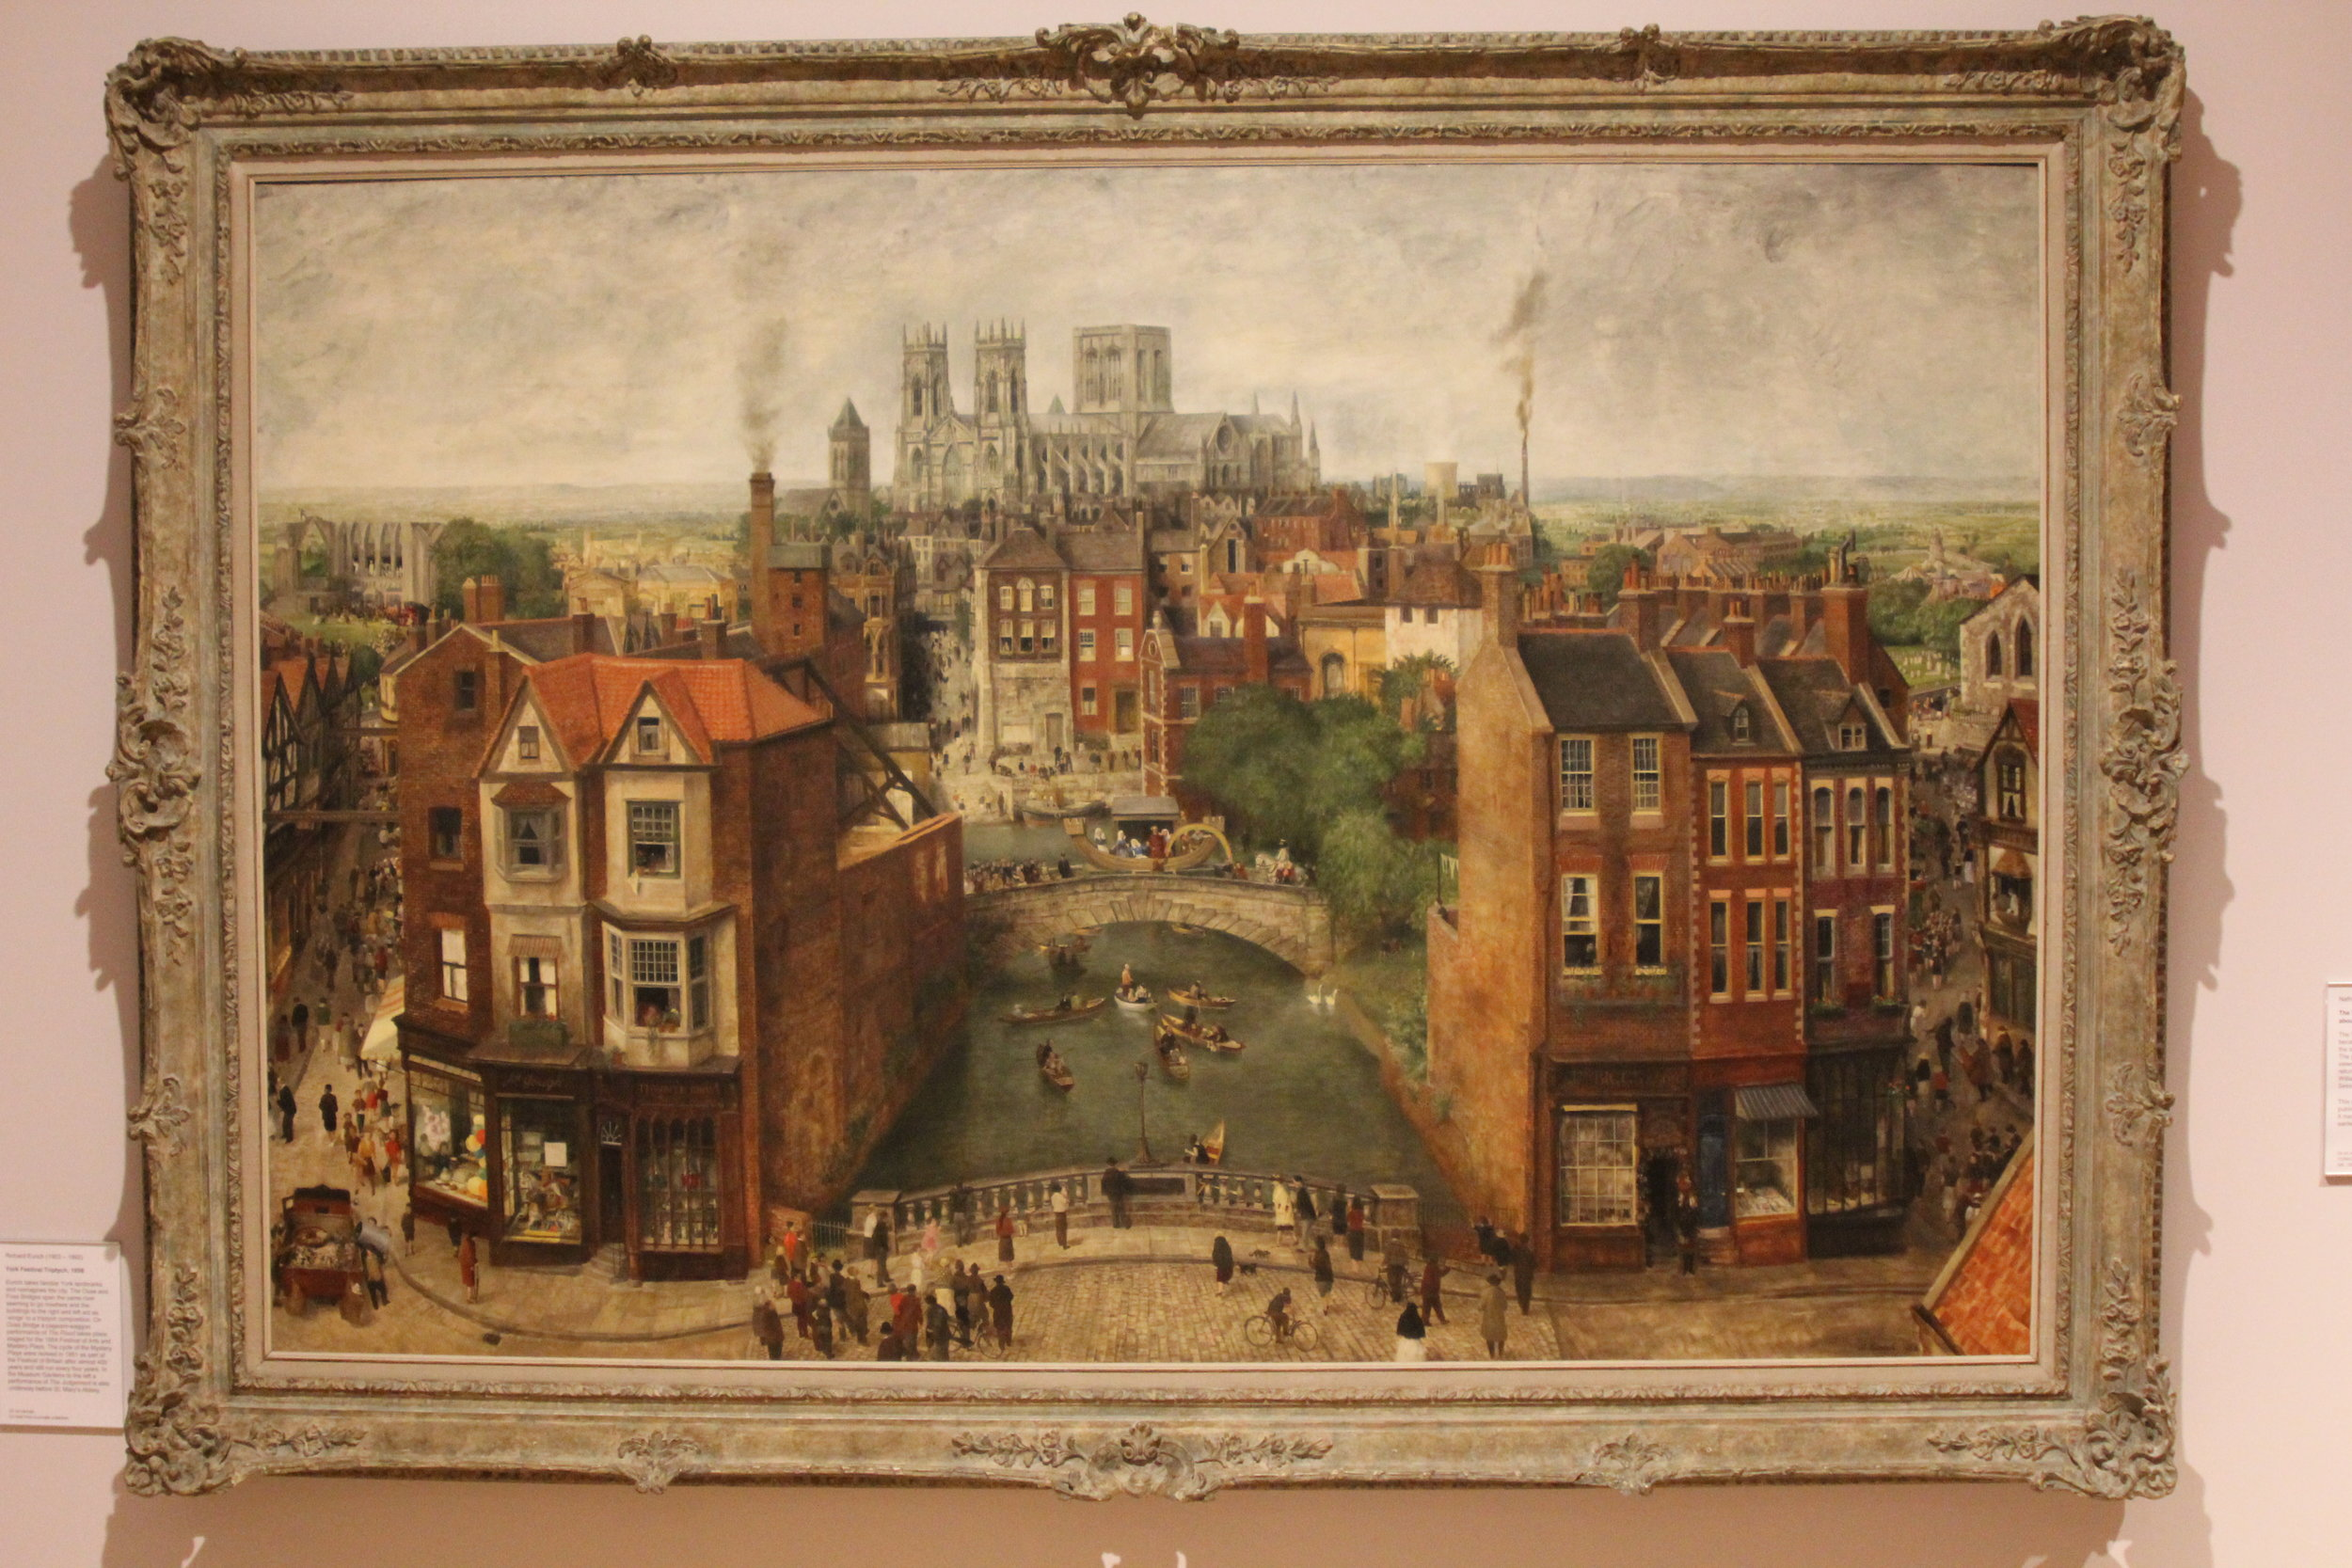 A painting of York's bridges